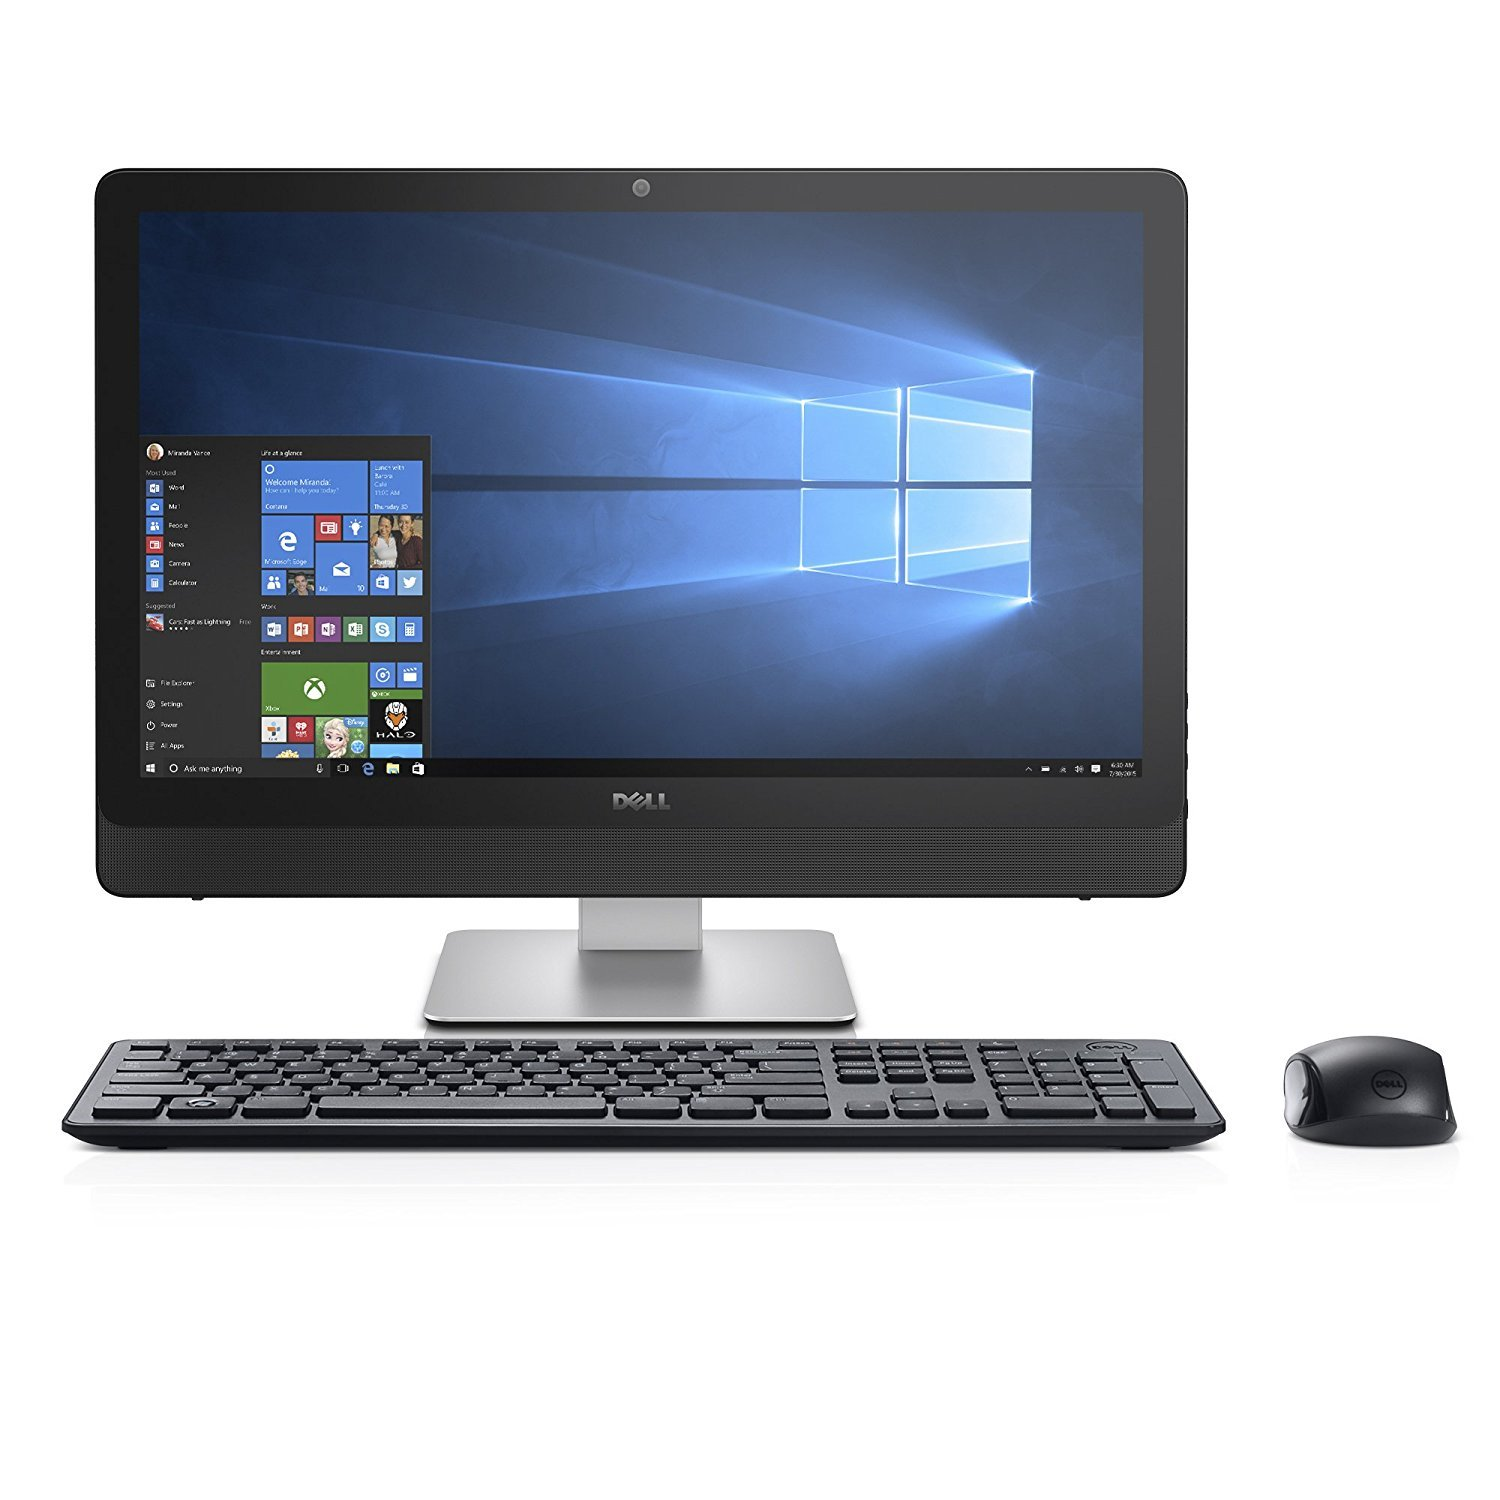 Dell Inspiron LED-Backlit Touch 23.8'' Full HD (1920 x 1080) All-In-One Computer, Intel Core i3-6100U, 8GB RAM, 1TB HDD, USB 3.0, HDMI, WiFi 802.11AC, Bluetooth, DVD RW, HD Webcam, Windows 10 by Dell (Image #1)